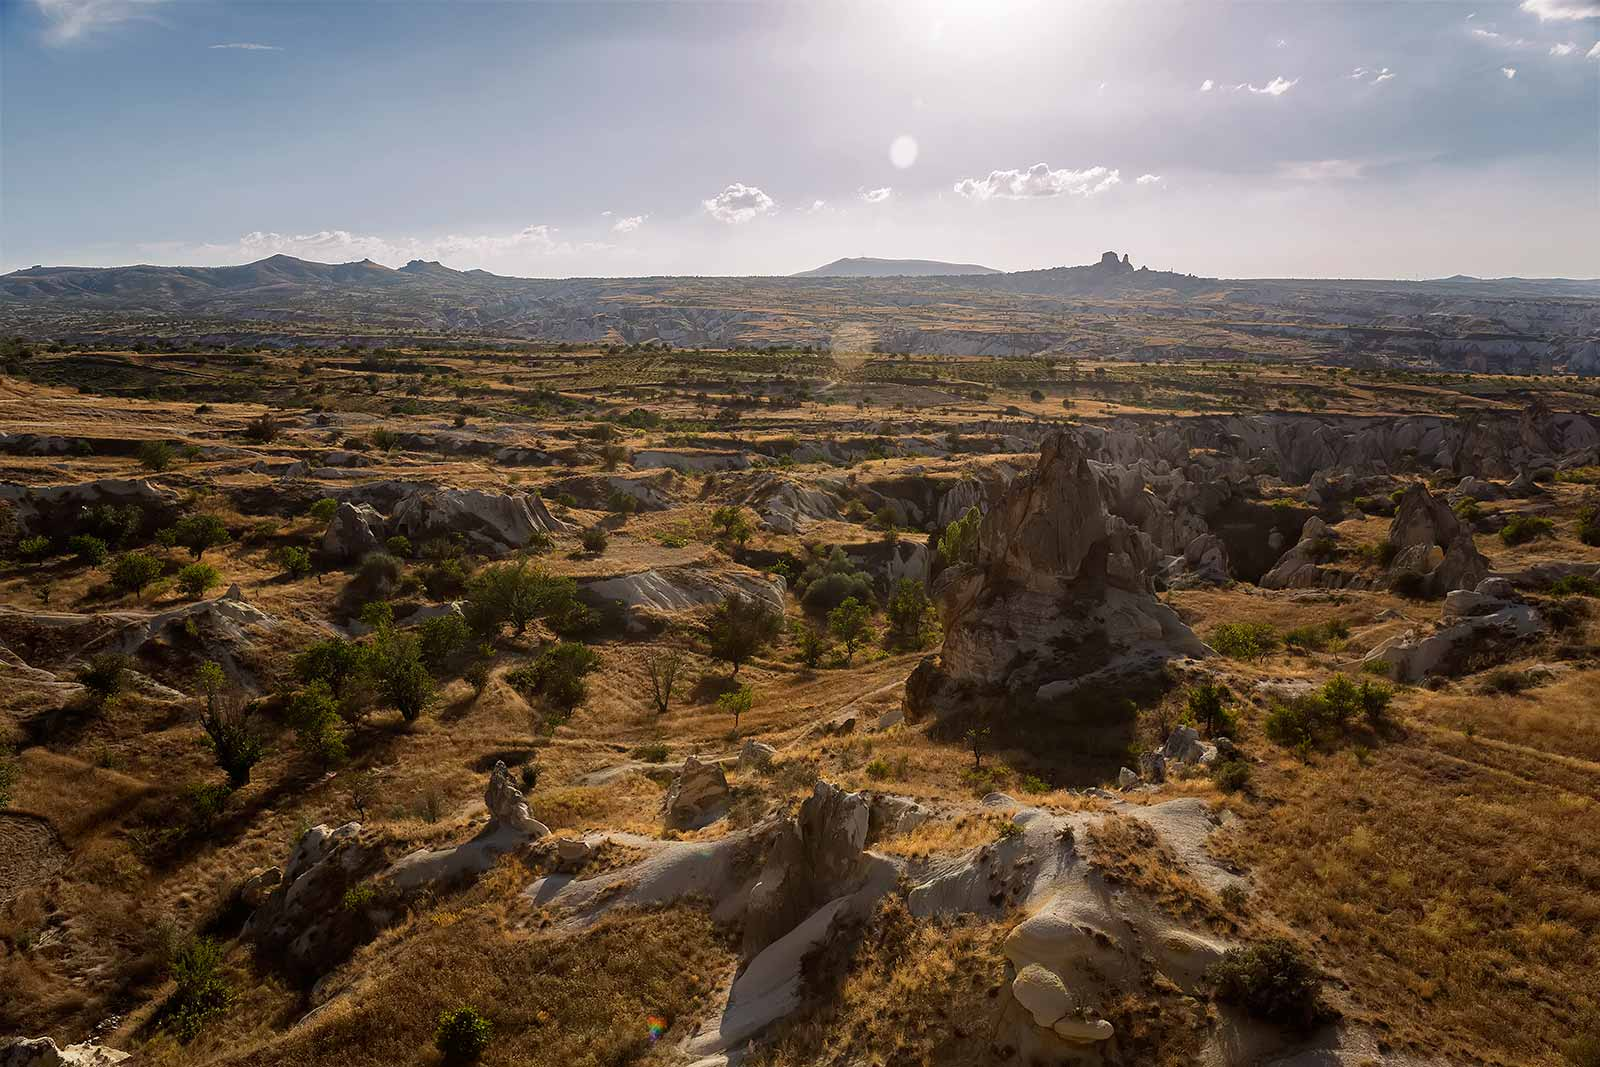 In Cappadocia magic seem real. How could geology explain such a surreal phenomenon of fairy like chimneys? The landscape truly looks like something out of a Salvador Dali dream.